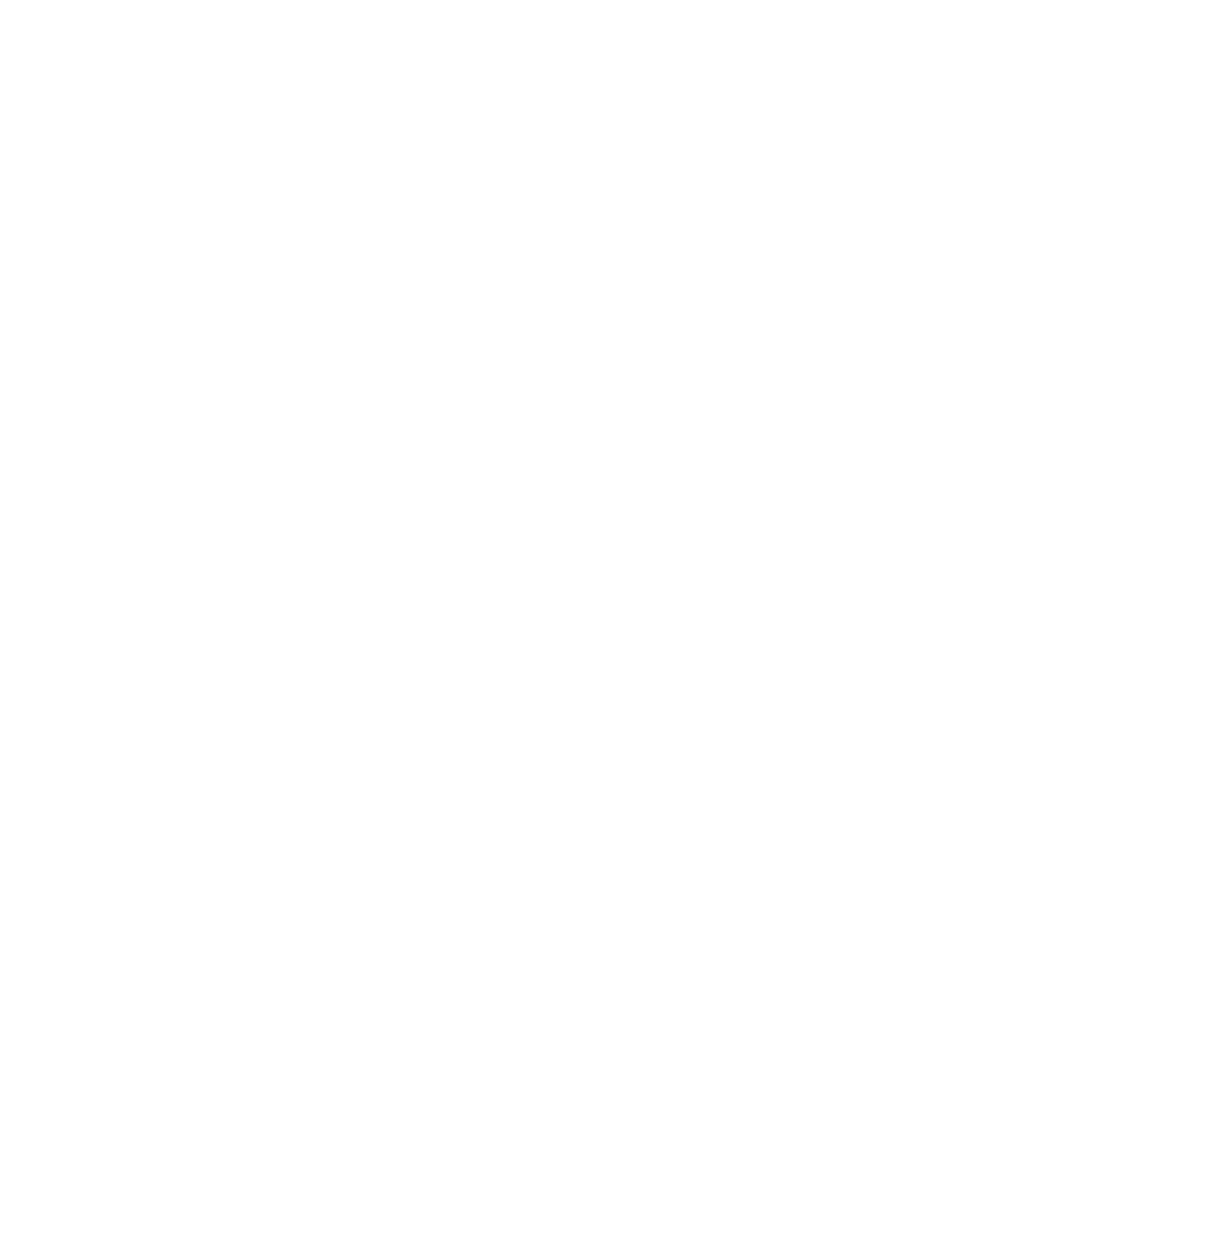 We would like to welcome Panhead to the party - Upper Hutt's Panhead Brewery are joining us as our major sponsor & partner for the 2020 Festival